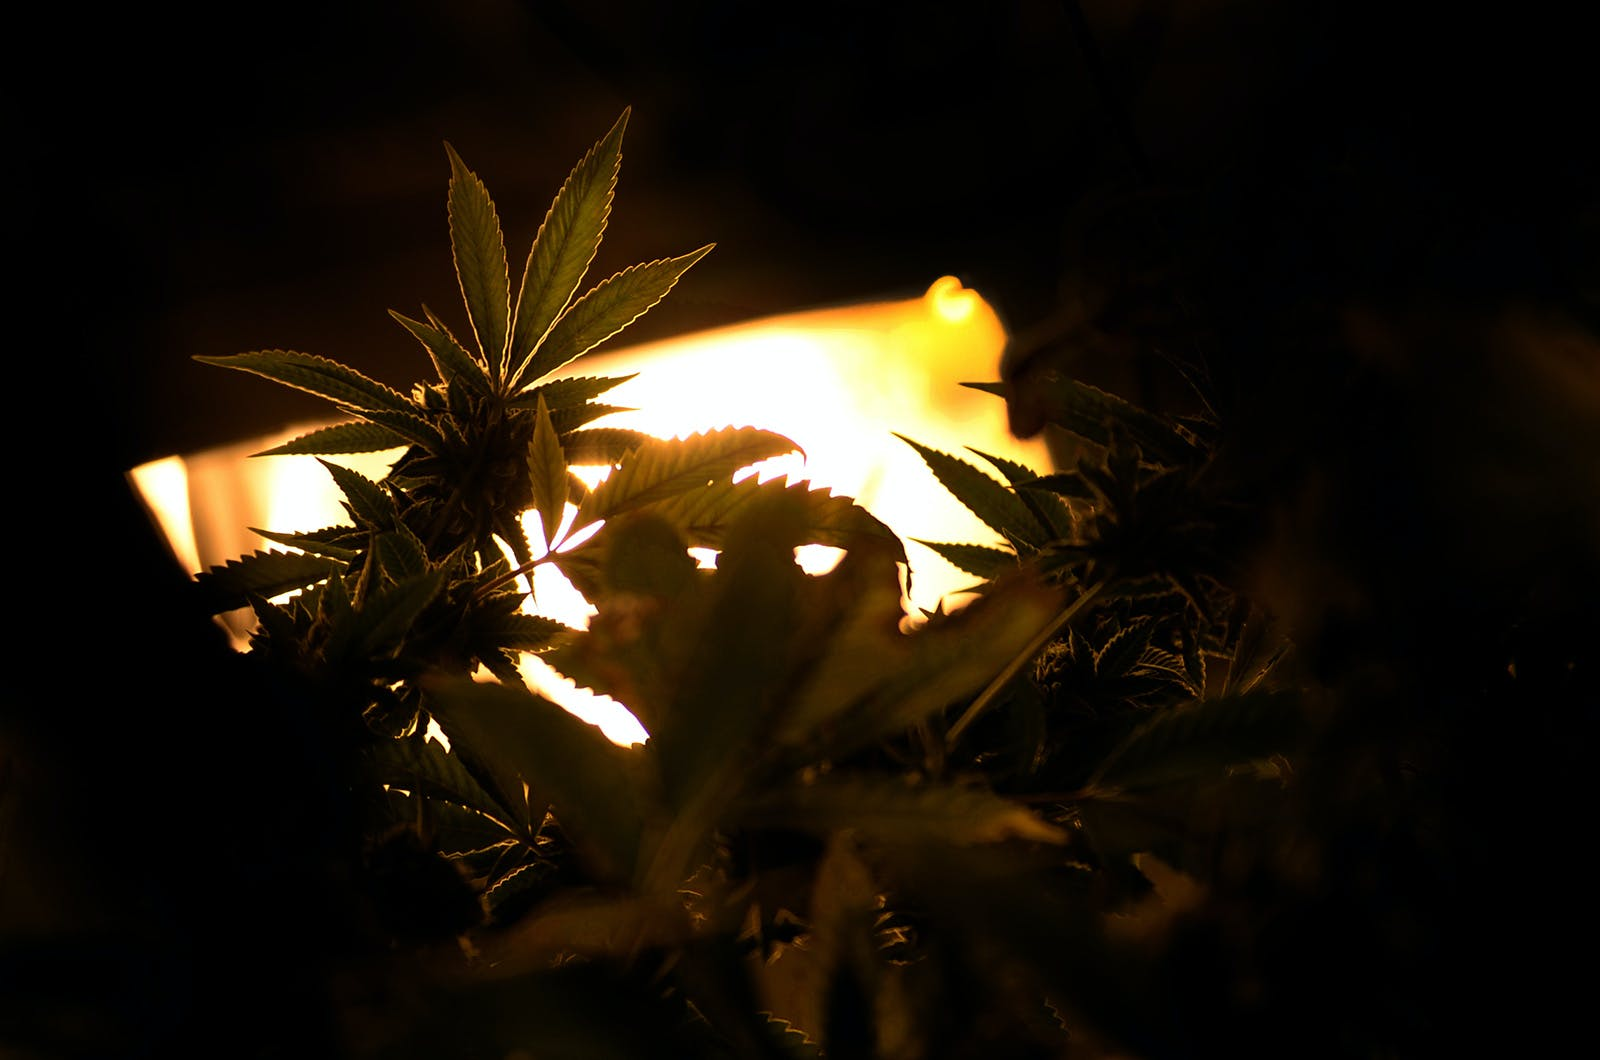 A cannabis plant is light from the rear by one of the best HID grow lights on the market